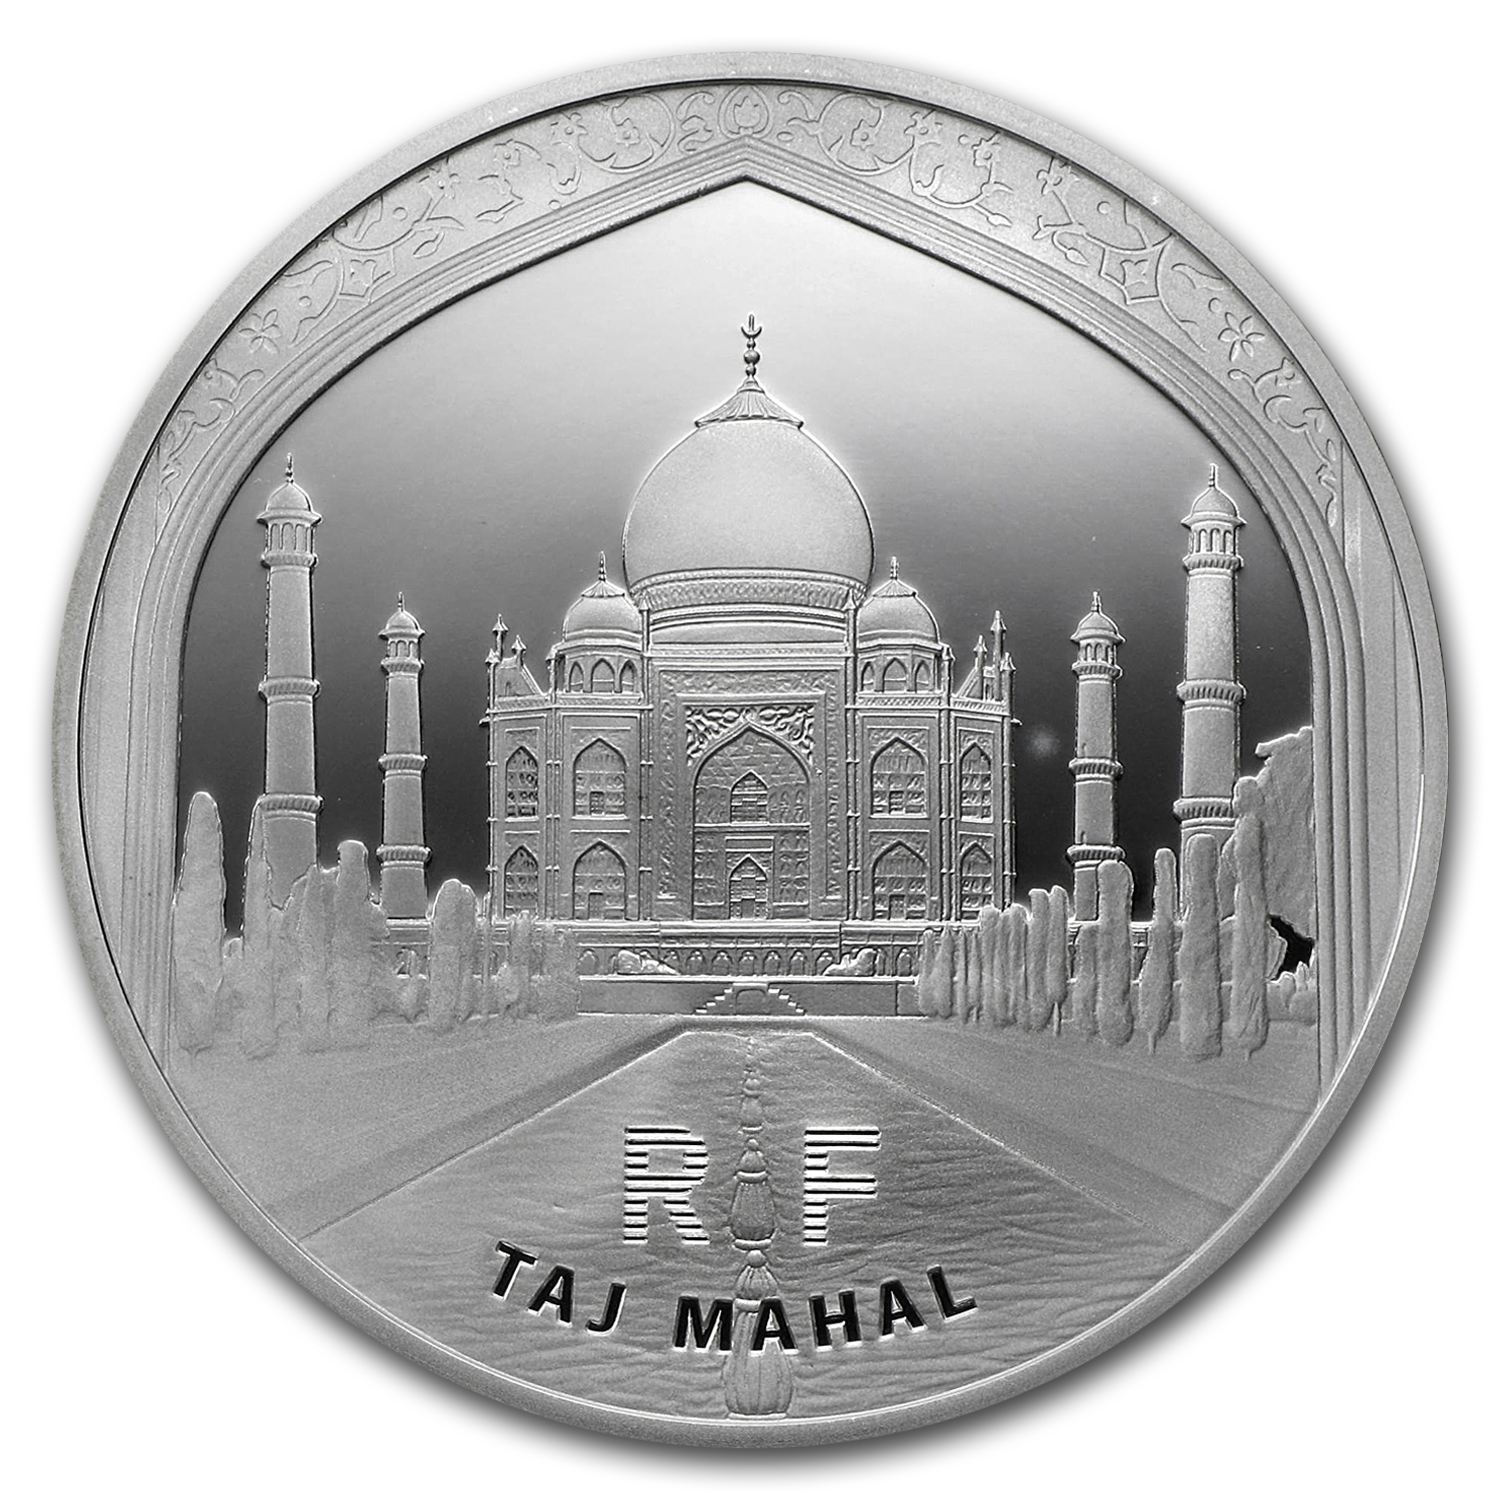 2010 10 Euro Silver Proof - UNESCO - Taj Mahal